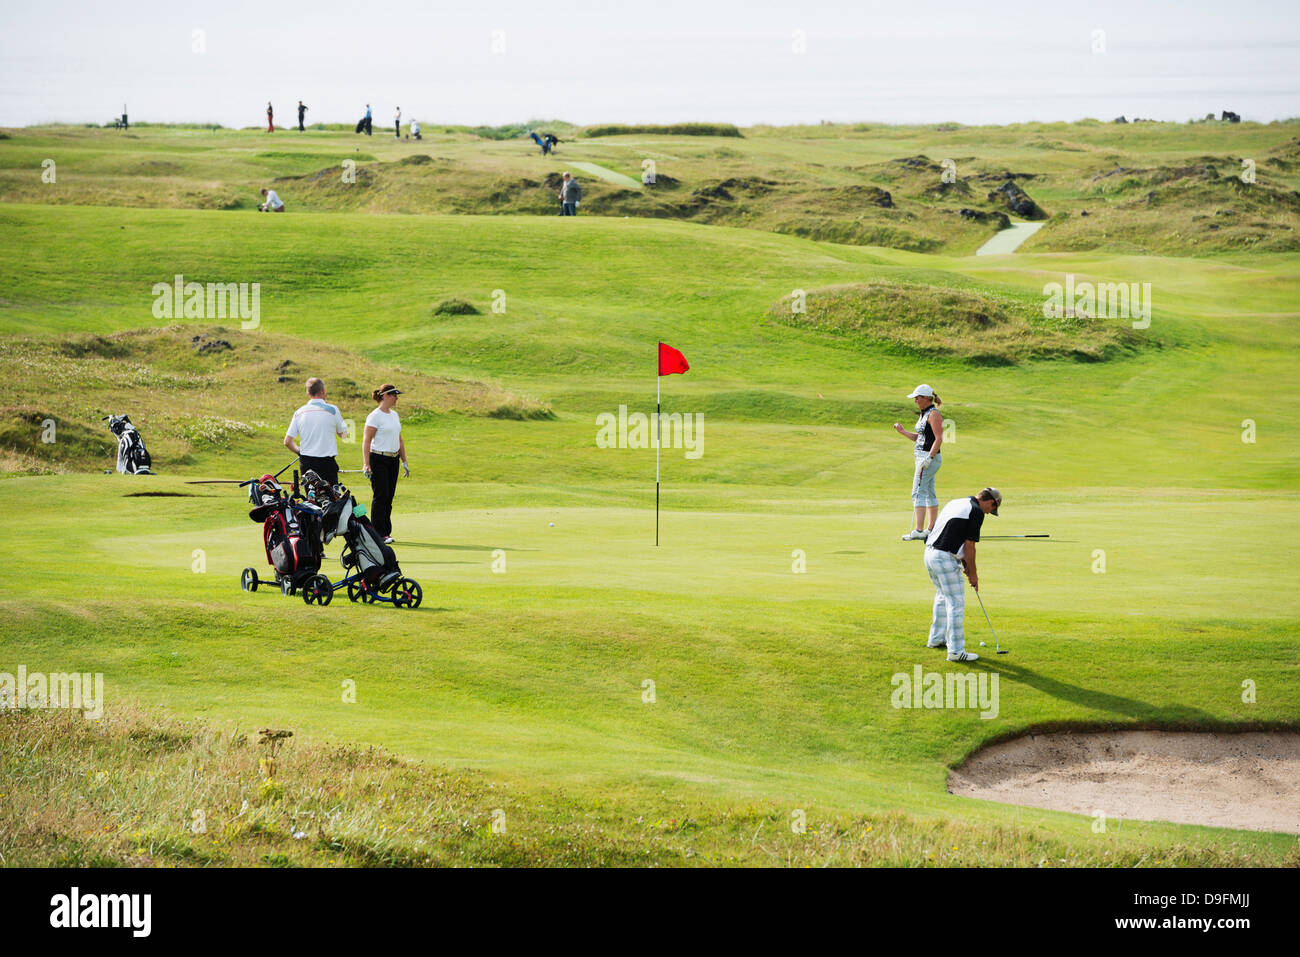 Golf course, Heimaey Island, volcanic Westman Islands, Vestmannaeyjar, Iceland, Polar Regions - Stock Image